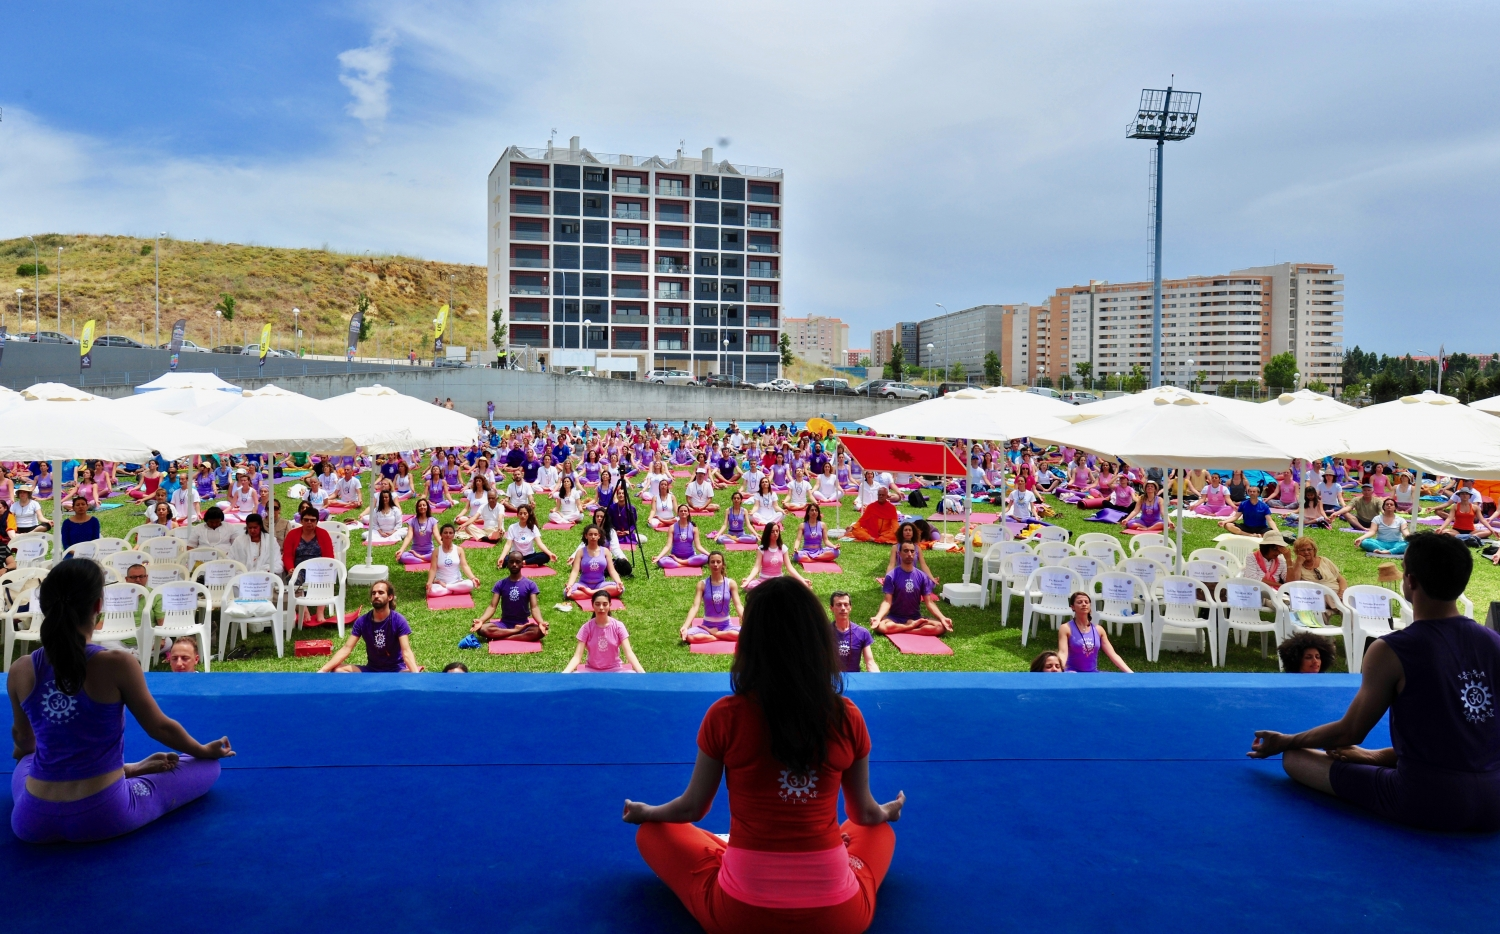 Comemoração do International Day of Yoga - IDY / Dia Internacional do Yoga - 2017 - Lisboa, Portugal